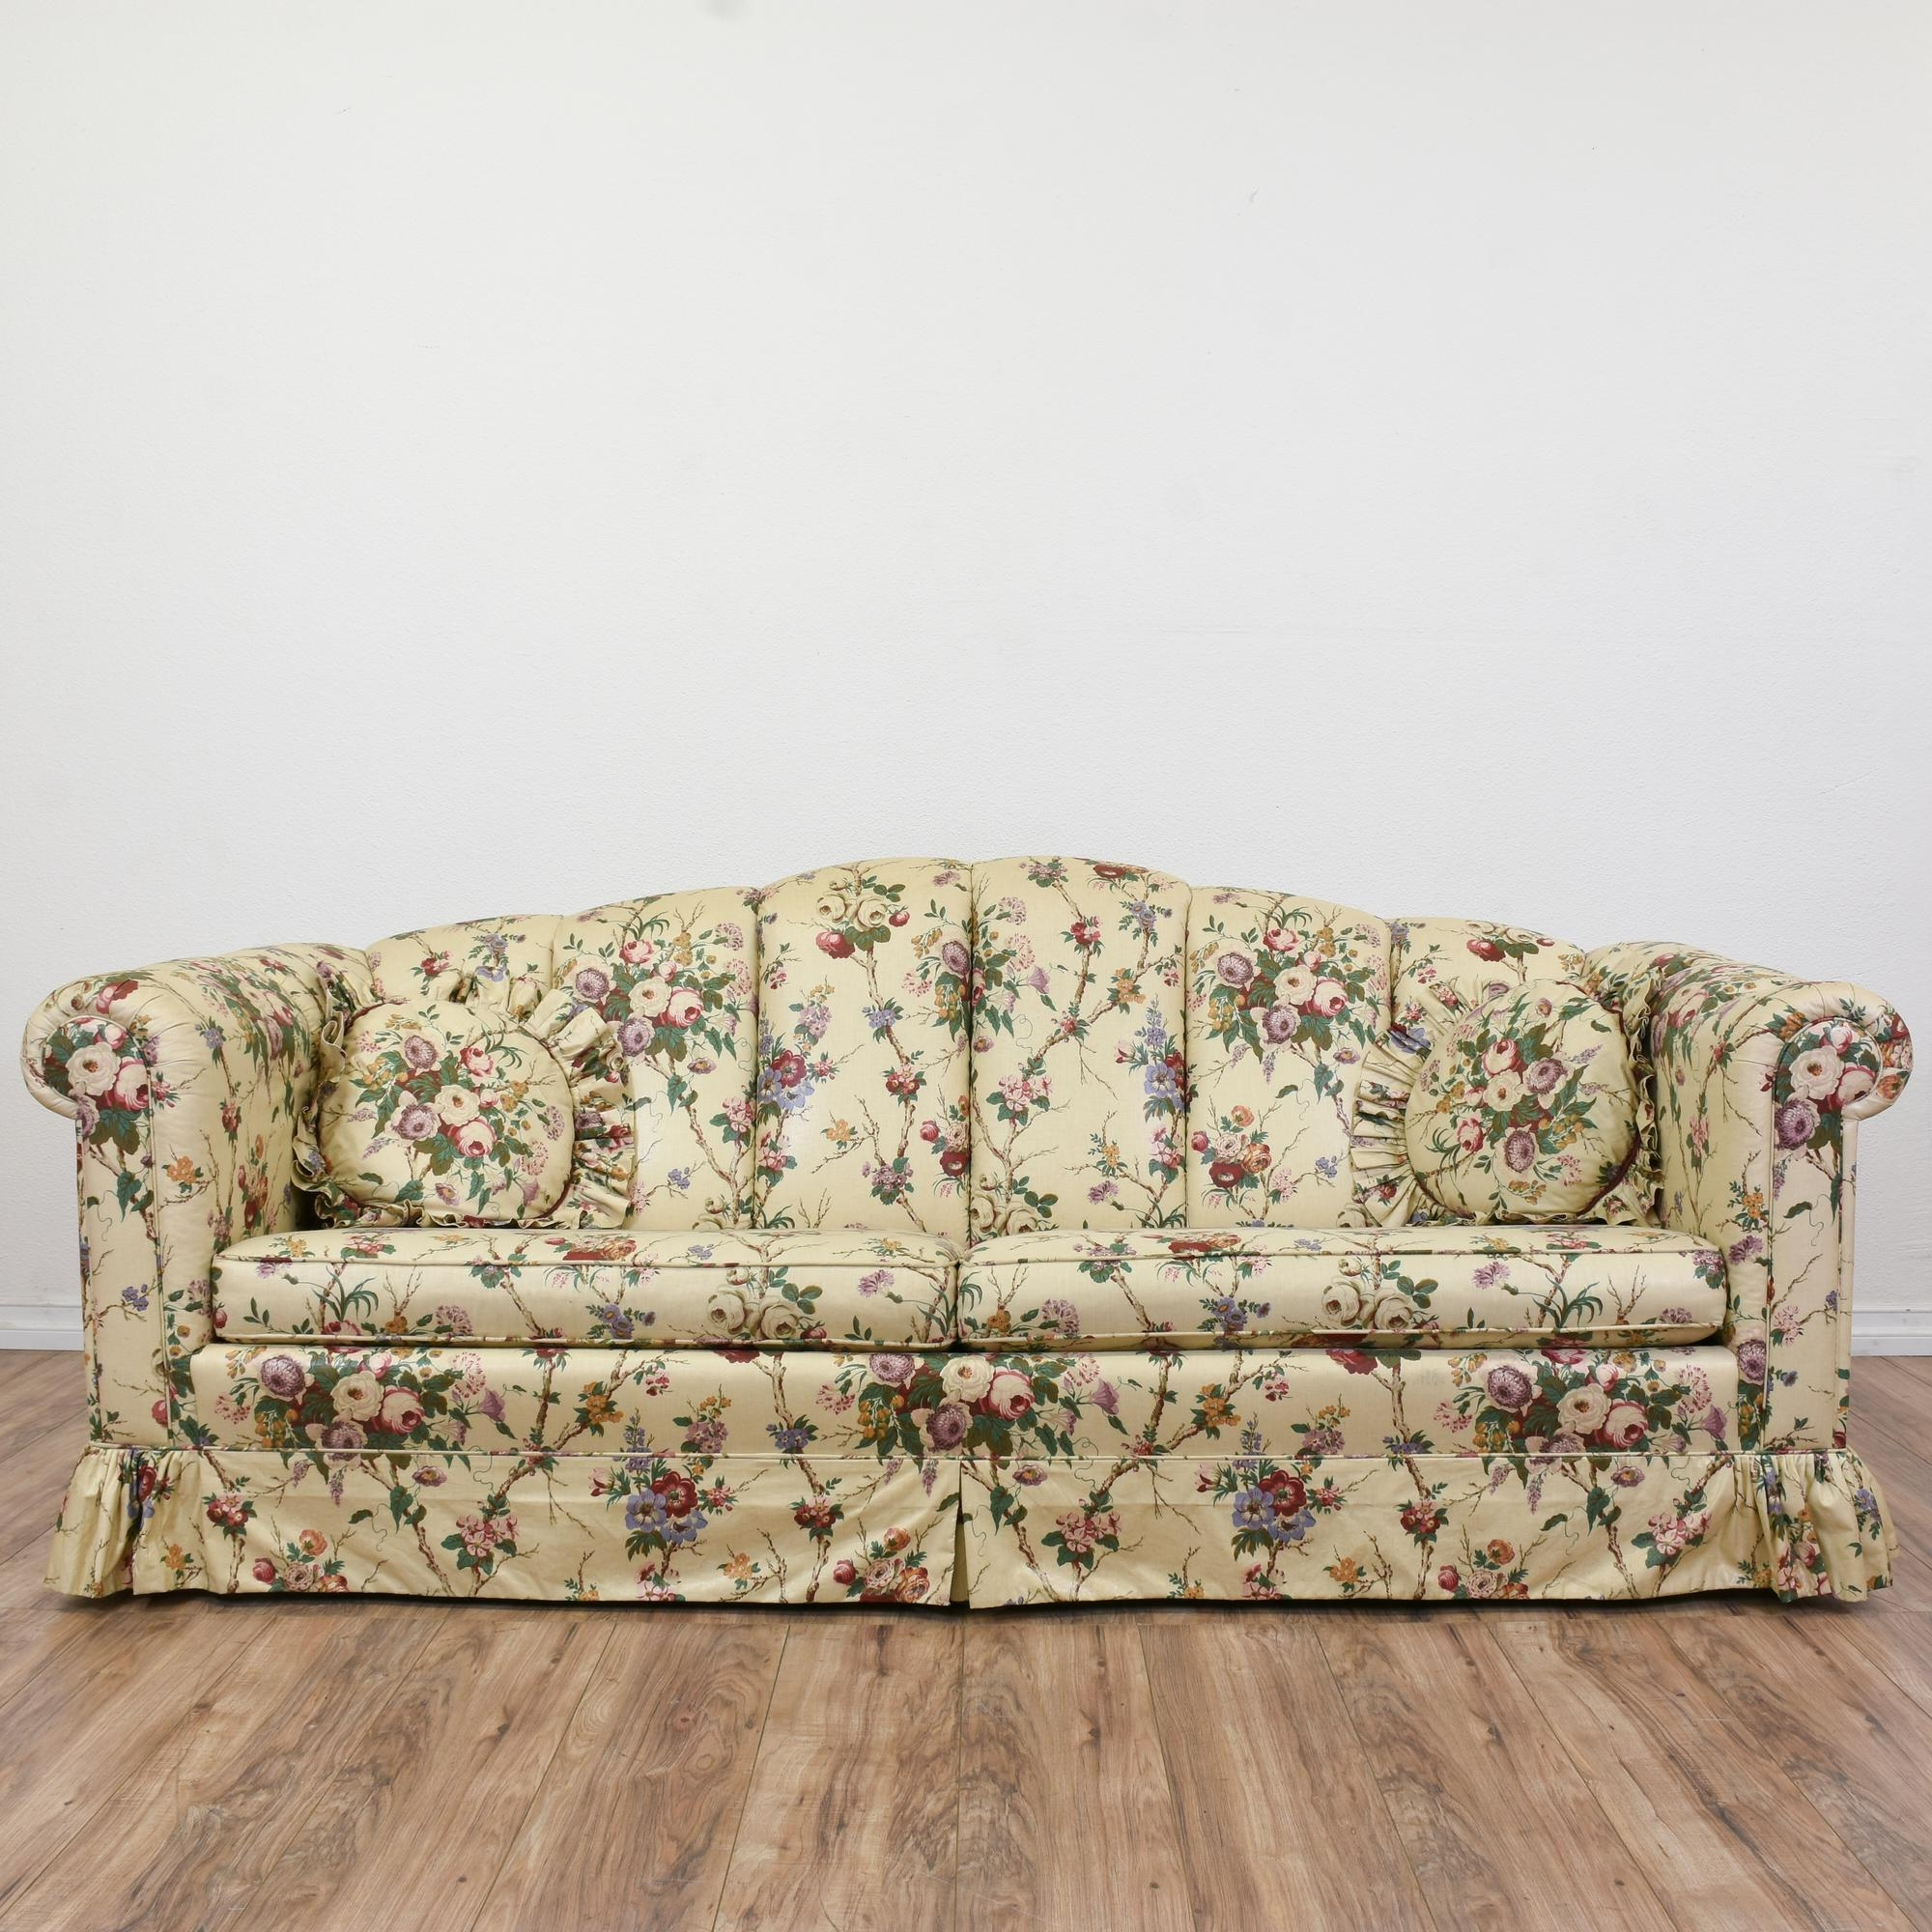 Floral Liberty Chintz Print Sofa Long Sofa Country Sofas And Regarding Chintz Sofa Beds (Image 10 of 15)